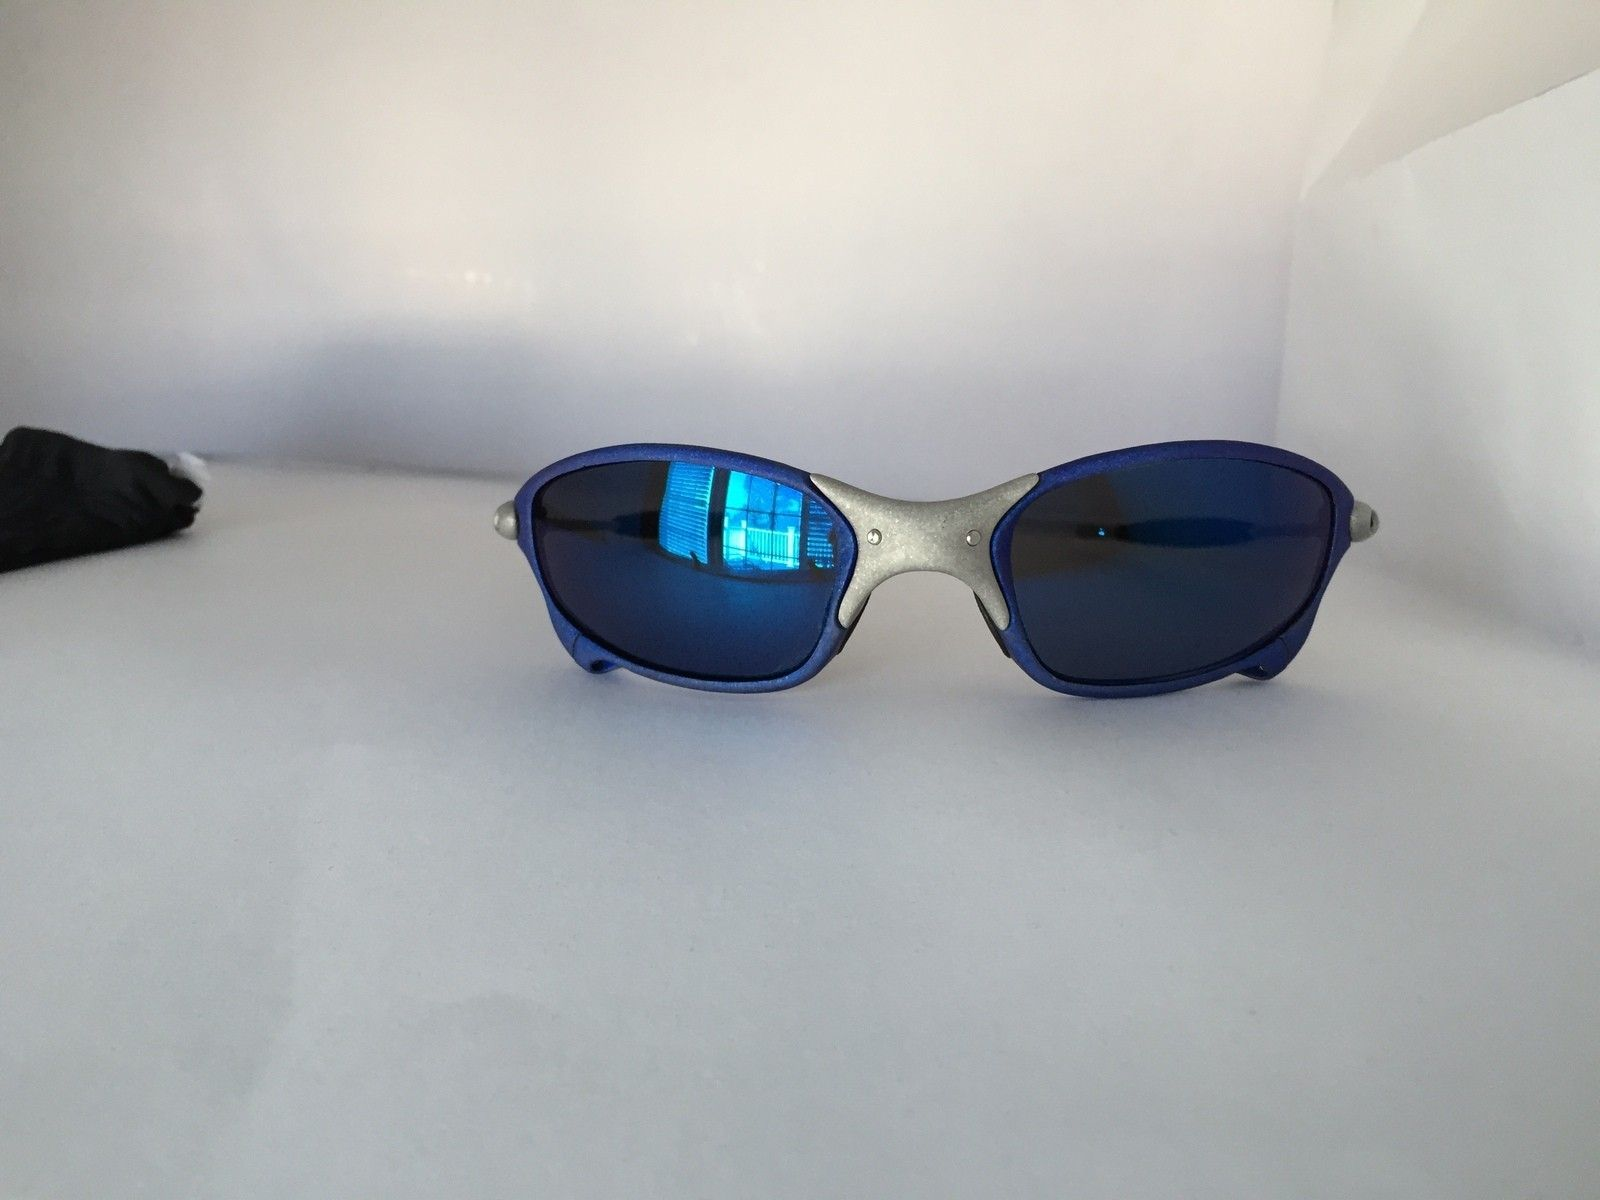 Anodized Juliet Dallas Cowboys colors Blue/Silver w/ OEM Ice Lenses - IMG_1787.JPG